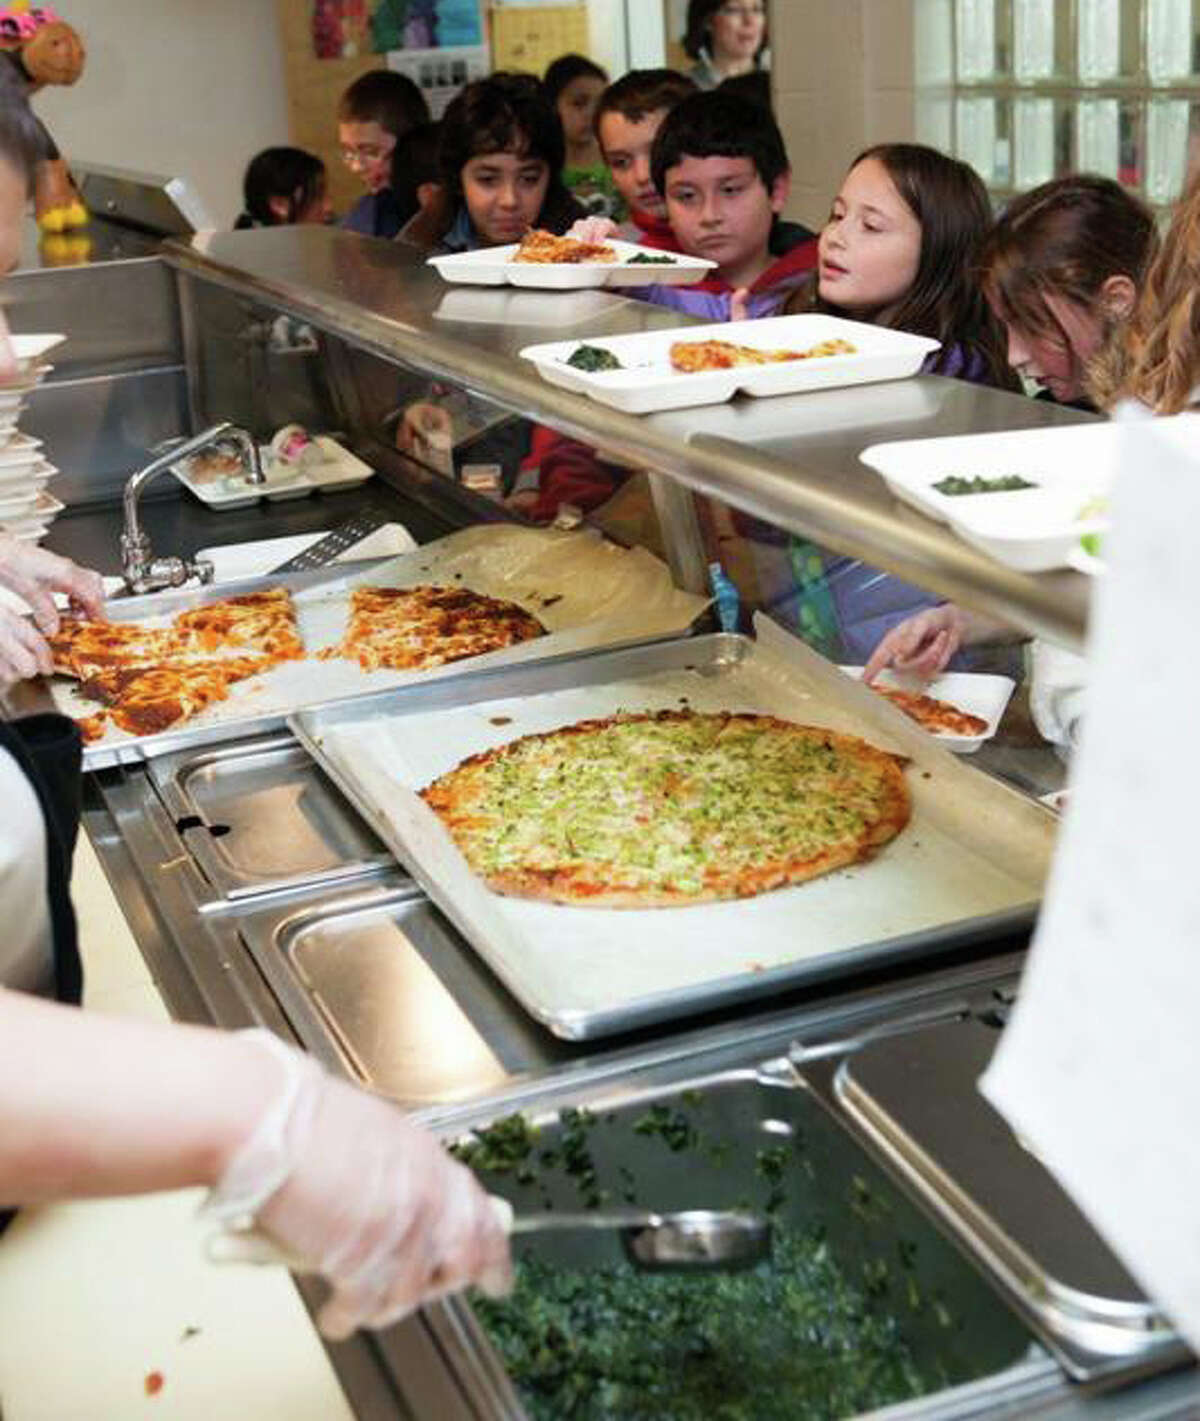 Students line up for lunch at McKinley School, one of two schools where new, healthier menus are being prepared and served under a pilot program this year.